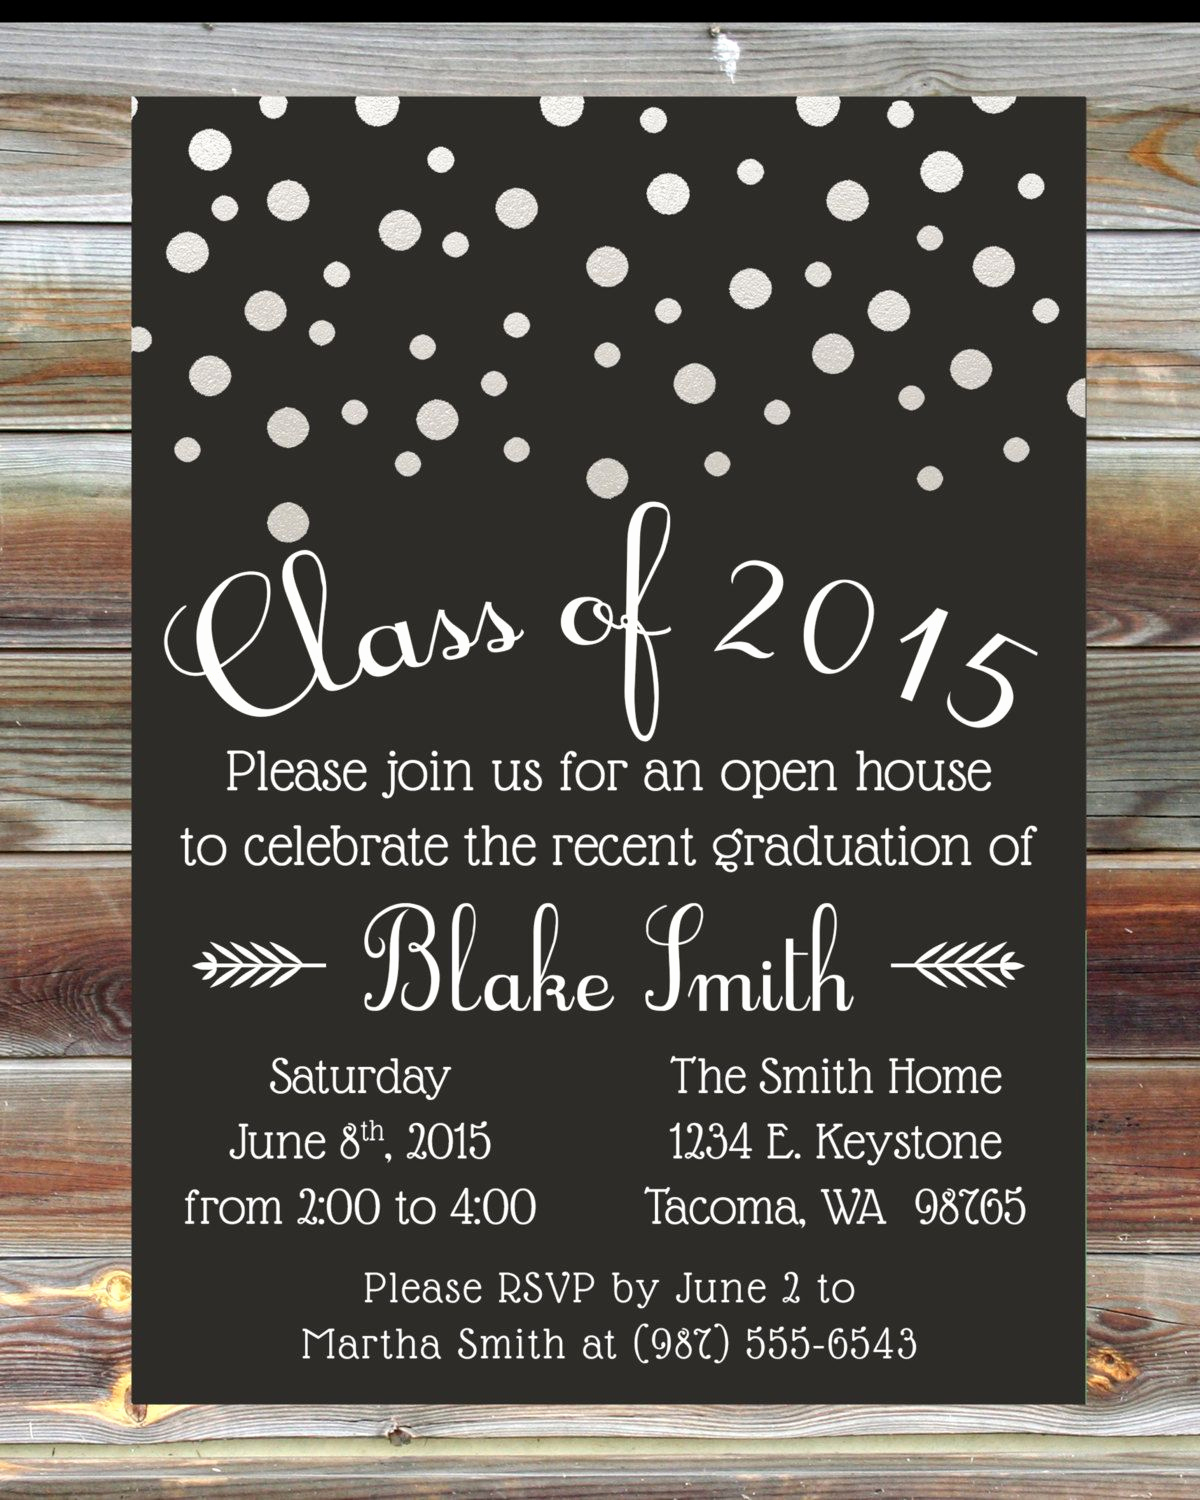 School Open House Invitation Template Inspirational Custom Graduation Party Invitation Graduation Open House